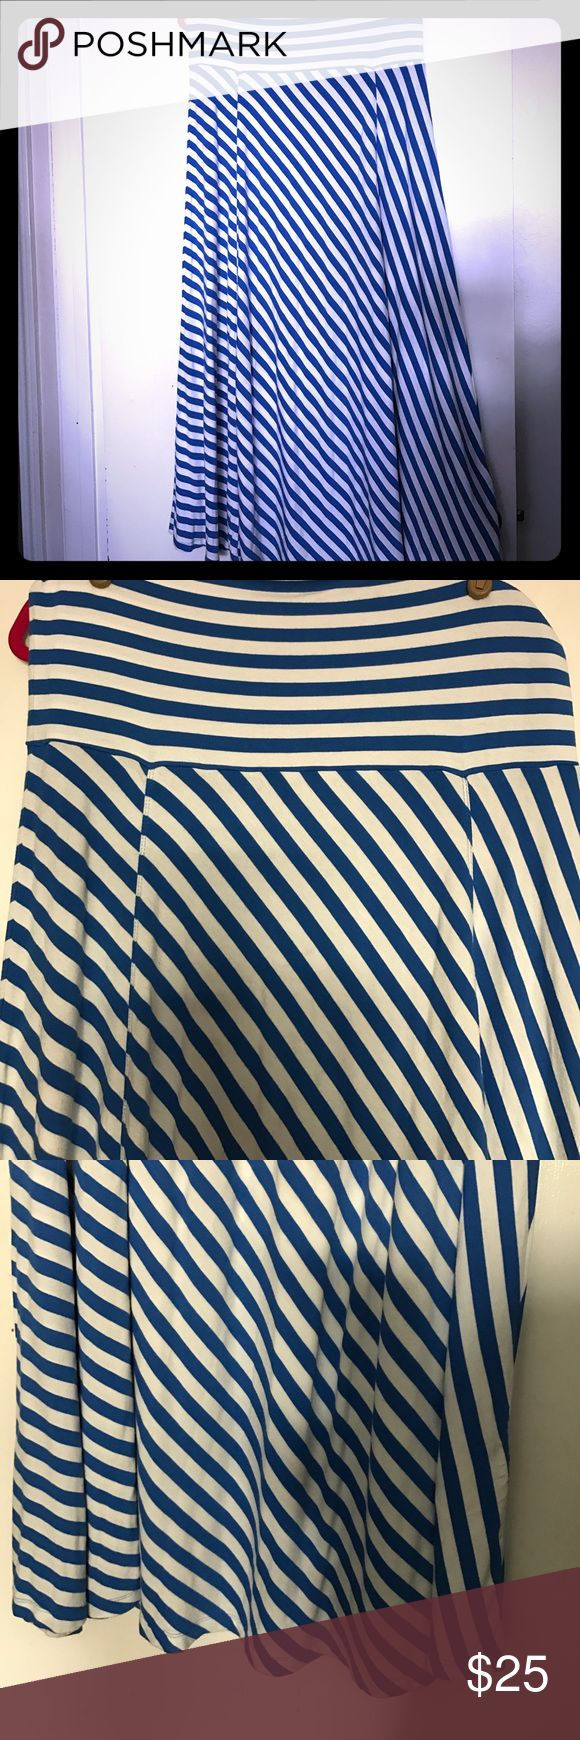 GAP Royal blue striped maxi skirt Royal blue maxi skirt 💙💙💙 Good condition. 👌🏾 GAP Skirts Maxi